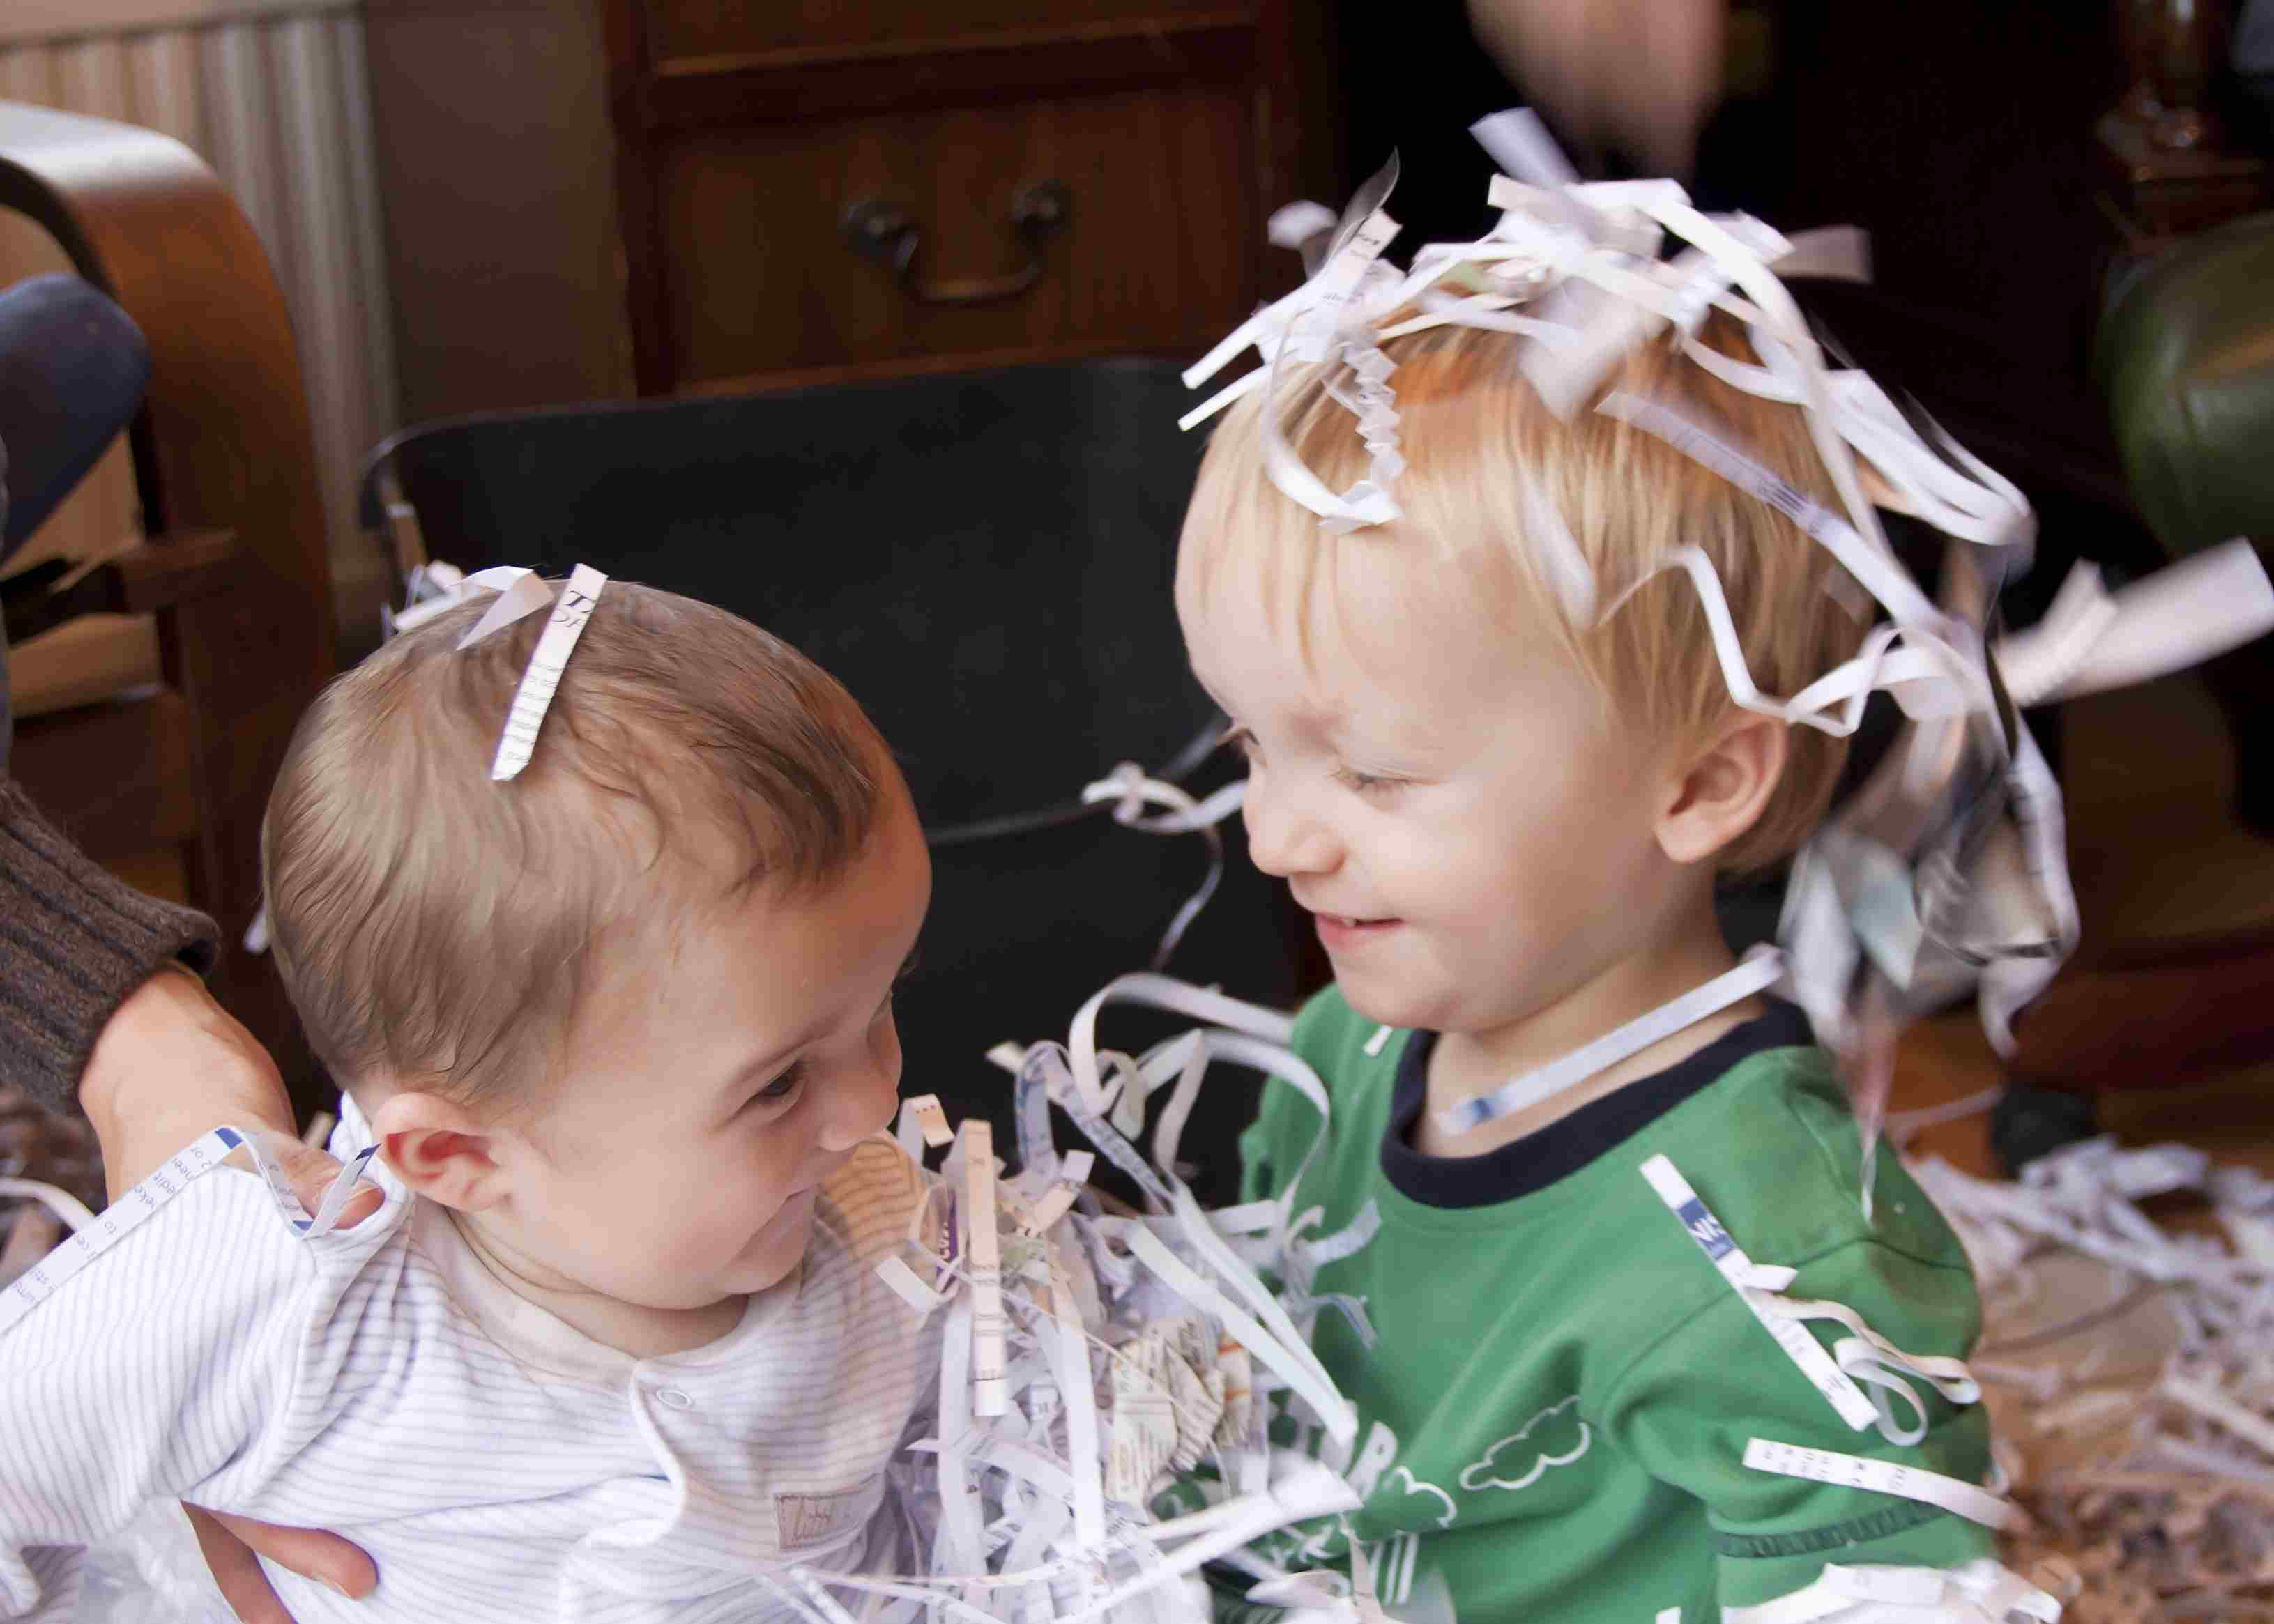 Boys playing with shredded paper